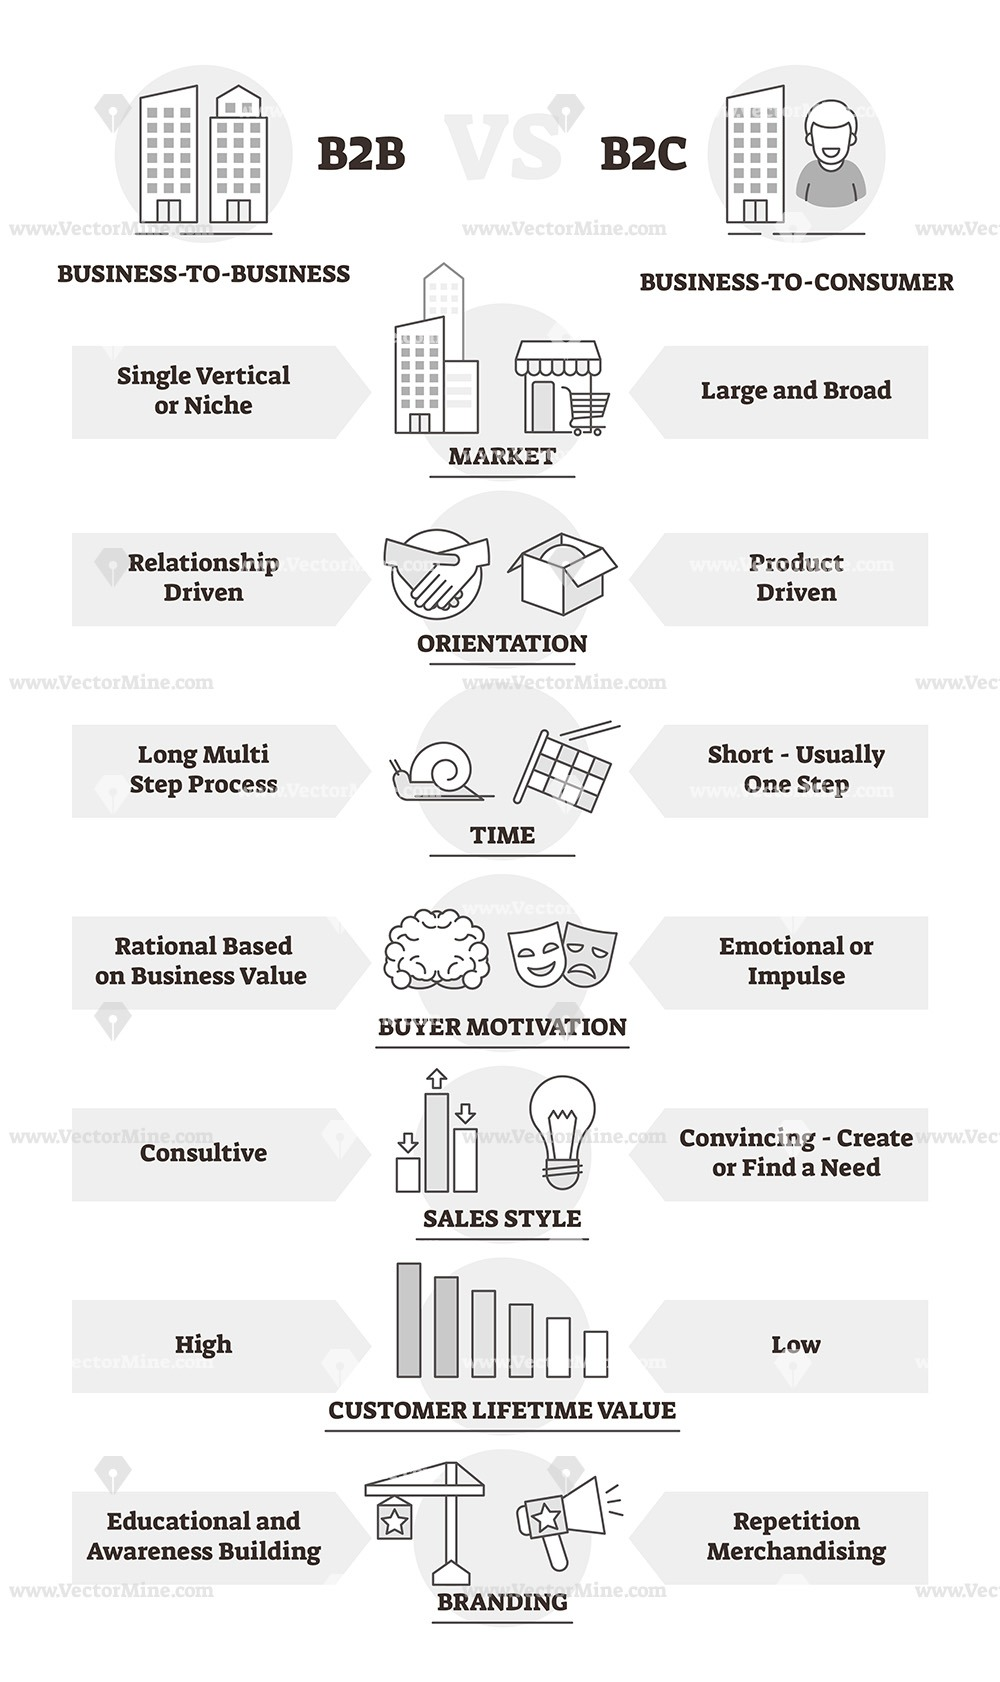 B2B and B2C business model comparison outline diagram vector illustration